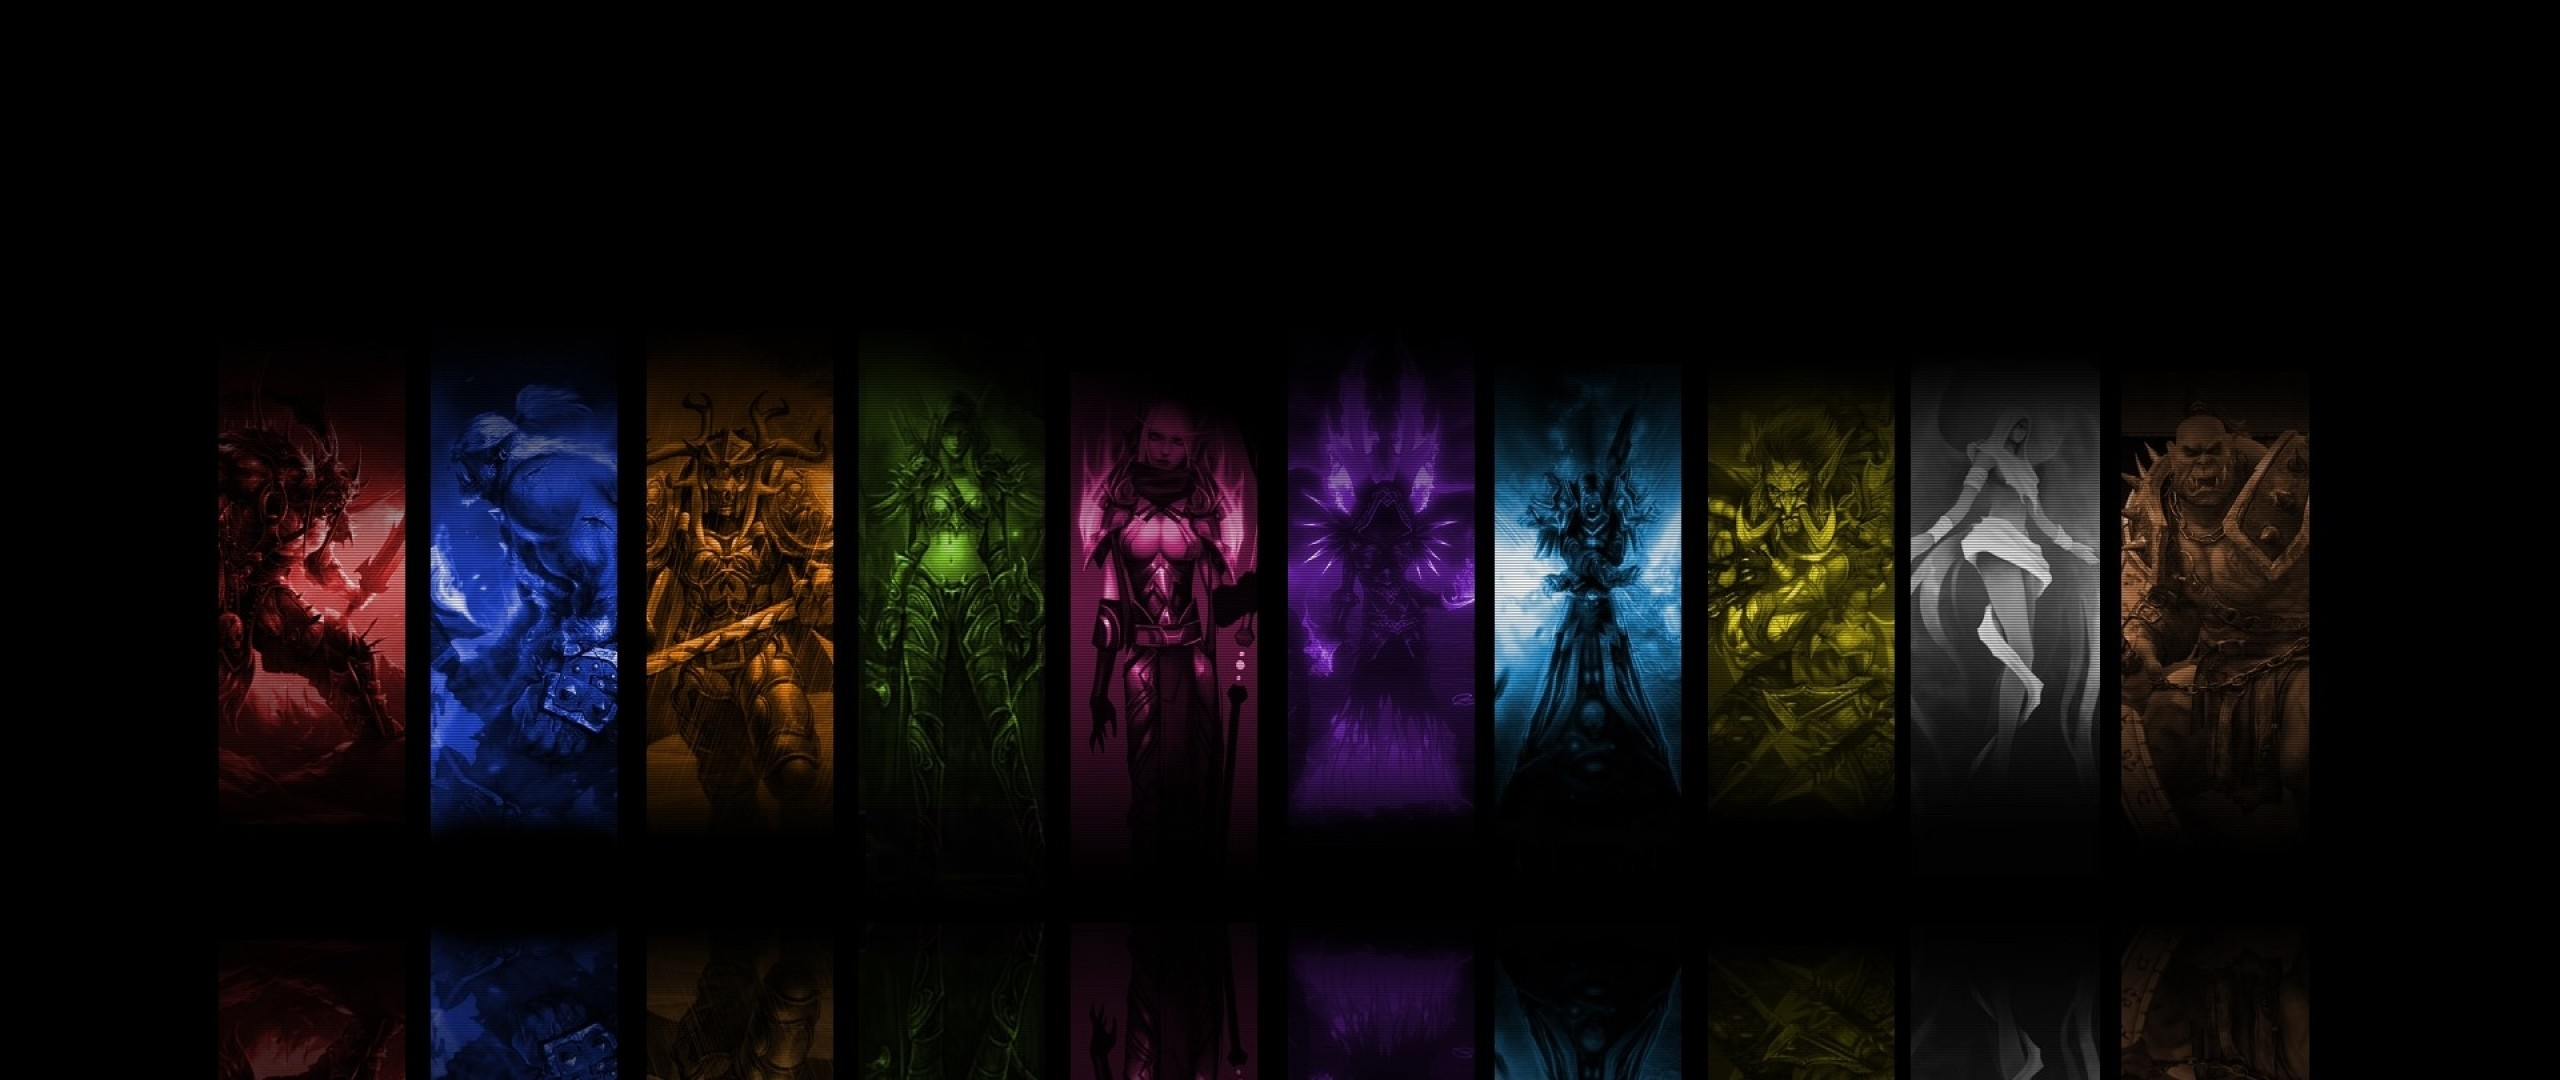 Best Wallpapers For Iphone 6 World Of Warcraft Priest Wallpaper 73 Images